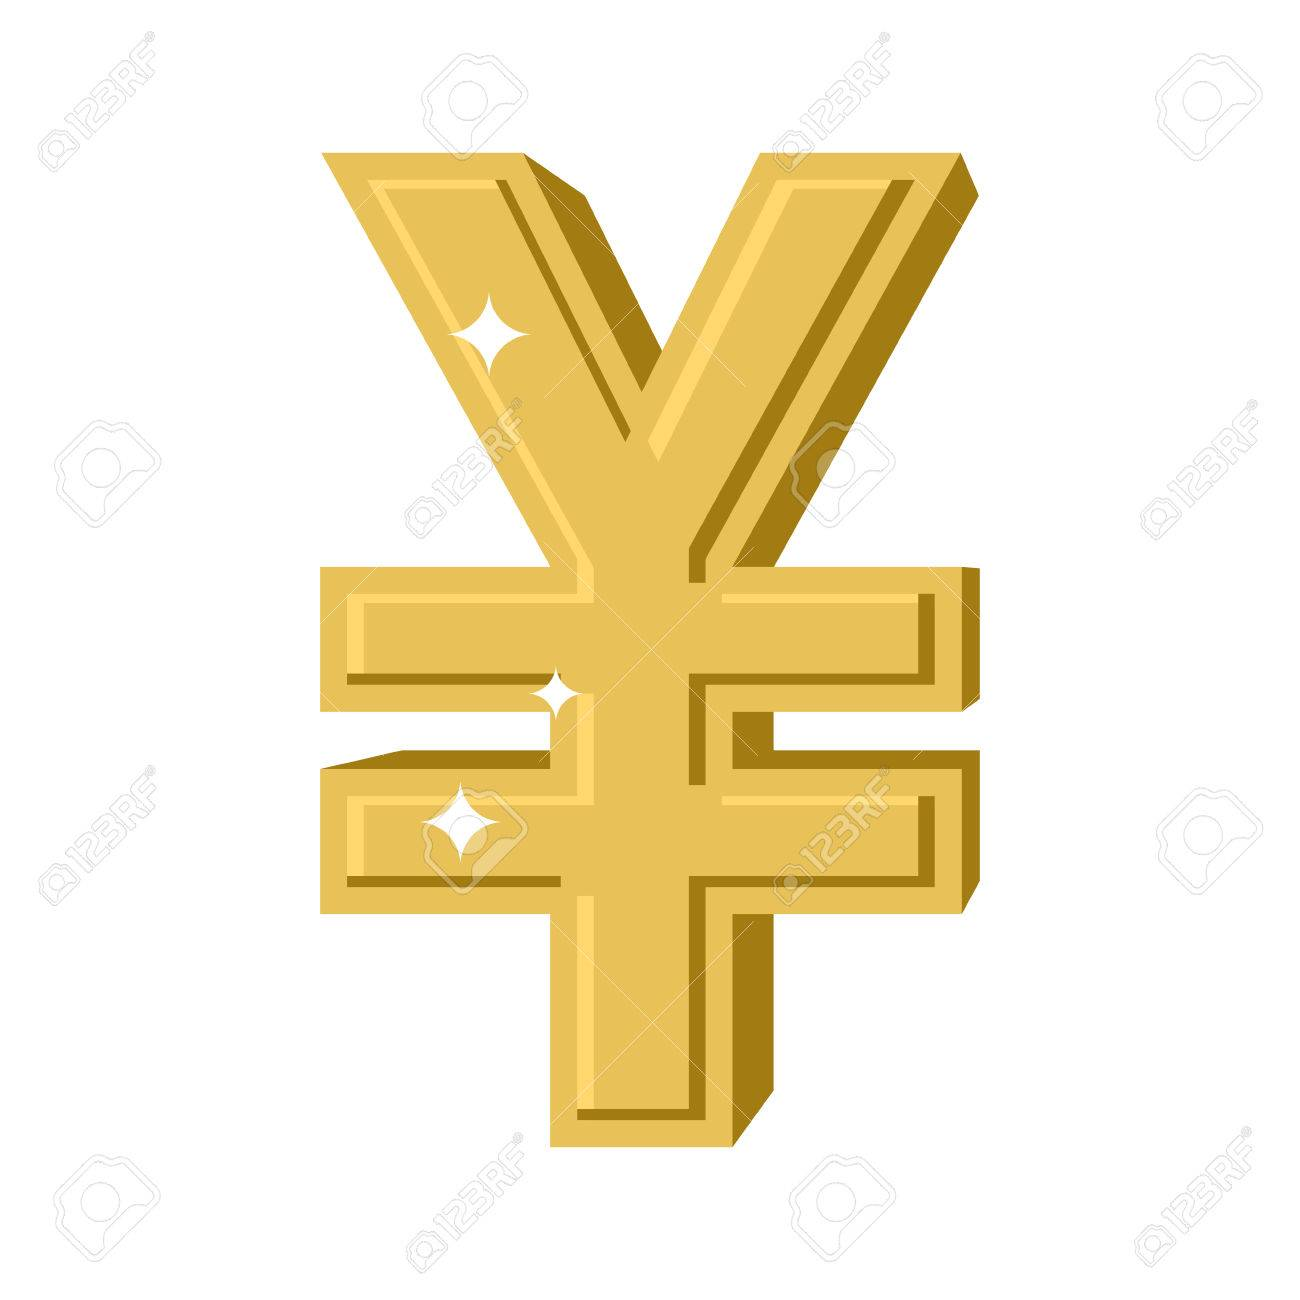 Golden chinese yen symbol of money in china cash sign in china golden chinese yen symbol of money in china cash sign in china from yellow biocorpaavc Choice Image